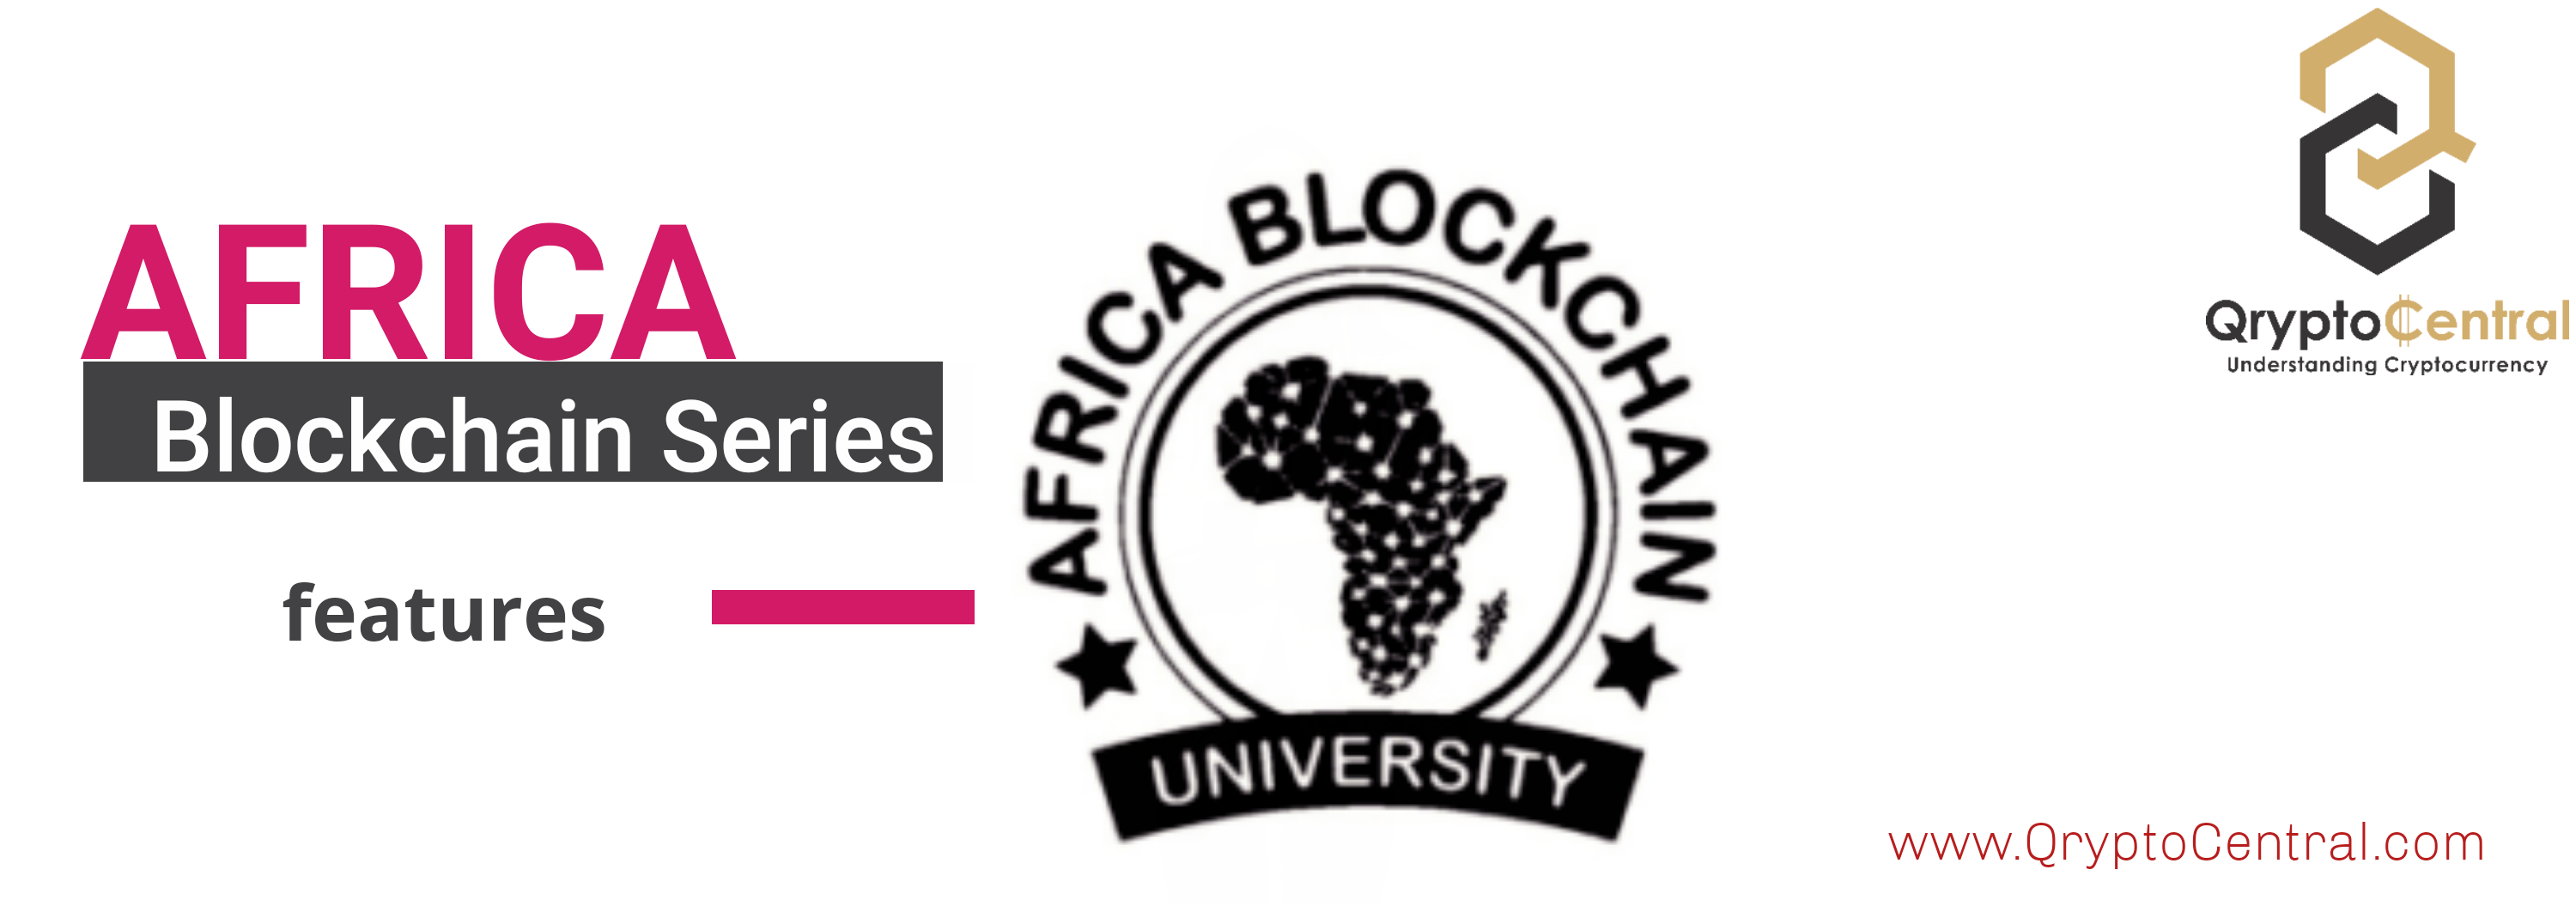 Africa Blockchain University on Focus in Africa Blockchain Series on Qryptocentral.com